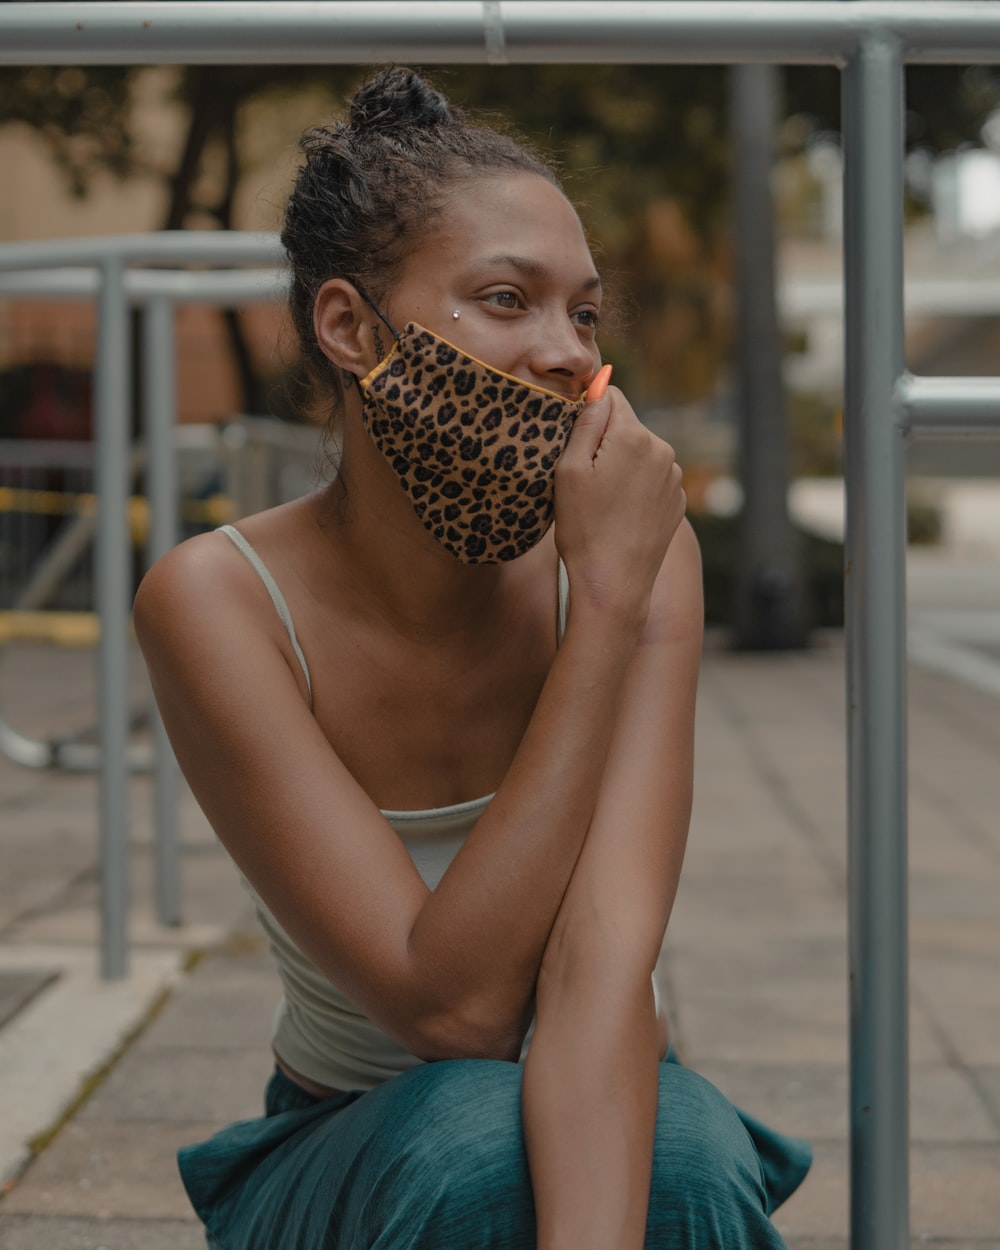 woman in blue tank top holding brown and black leopard print textile